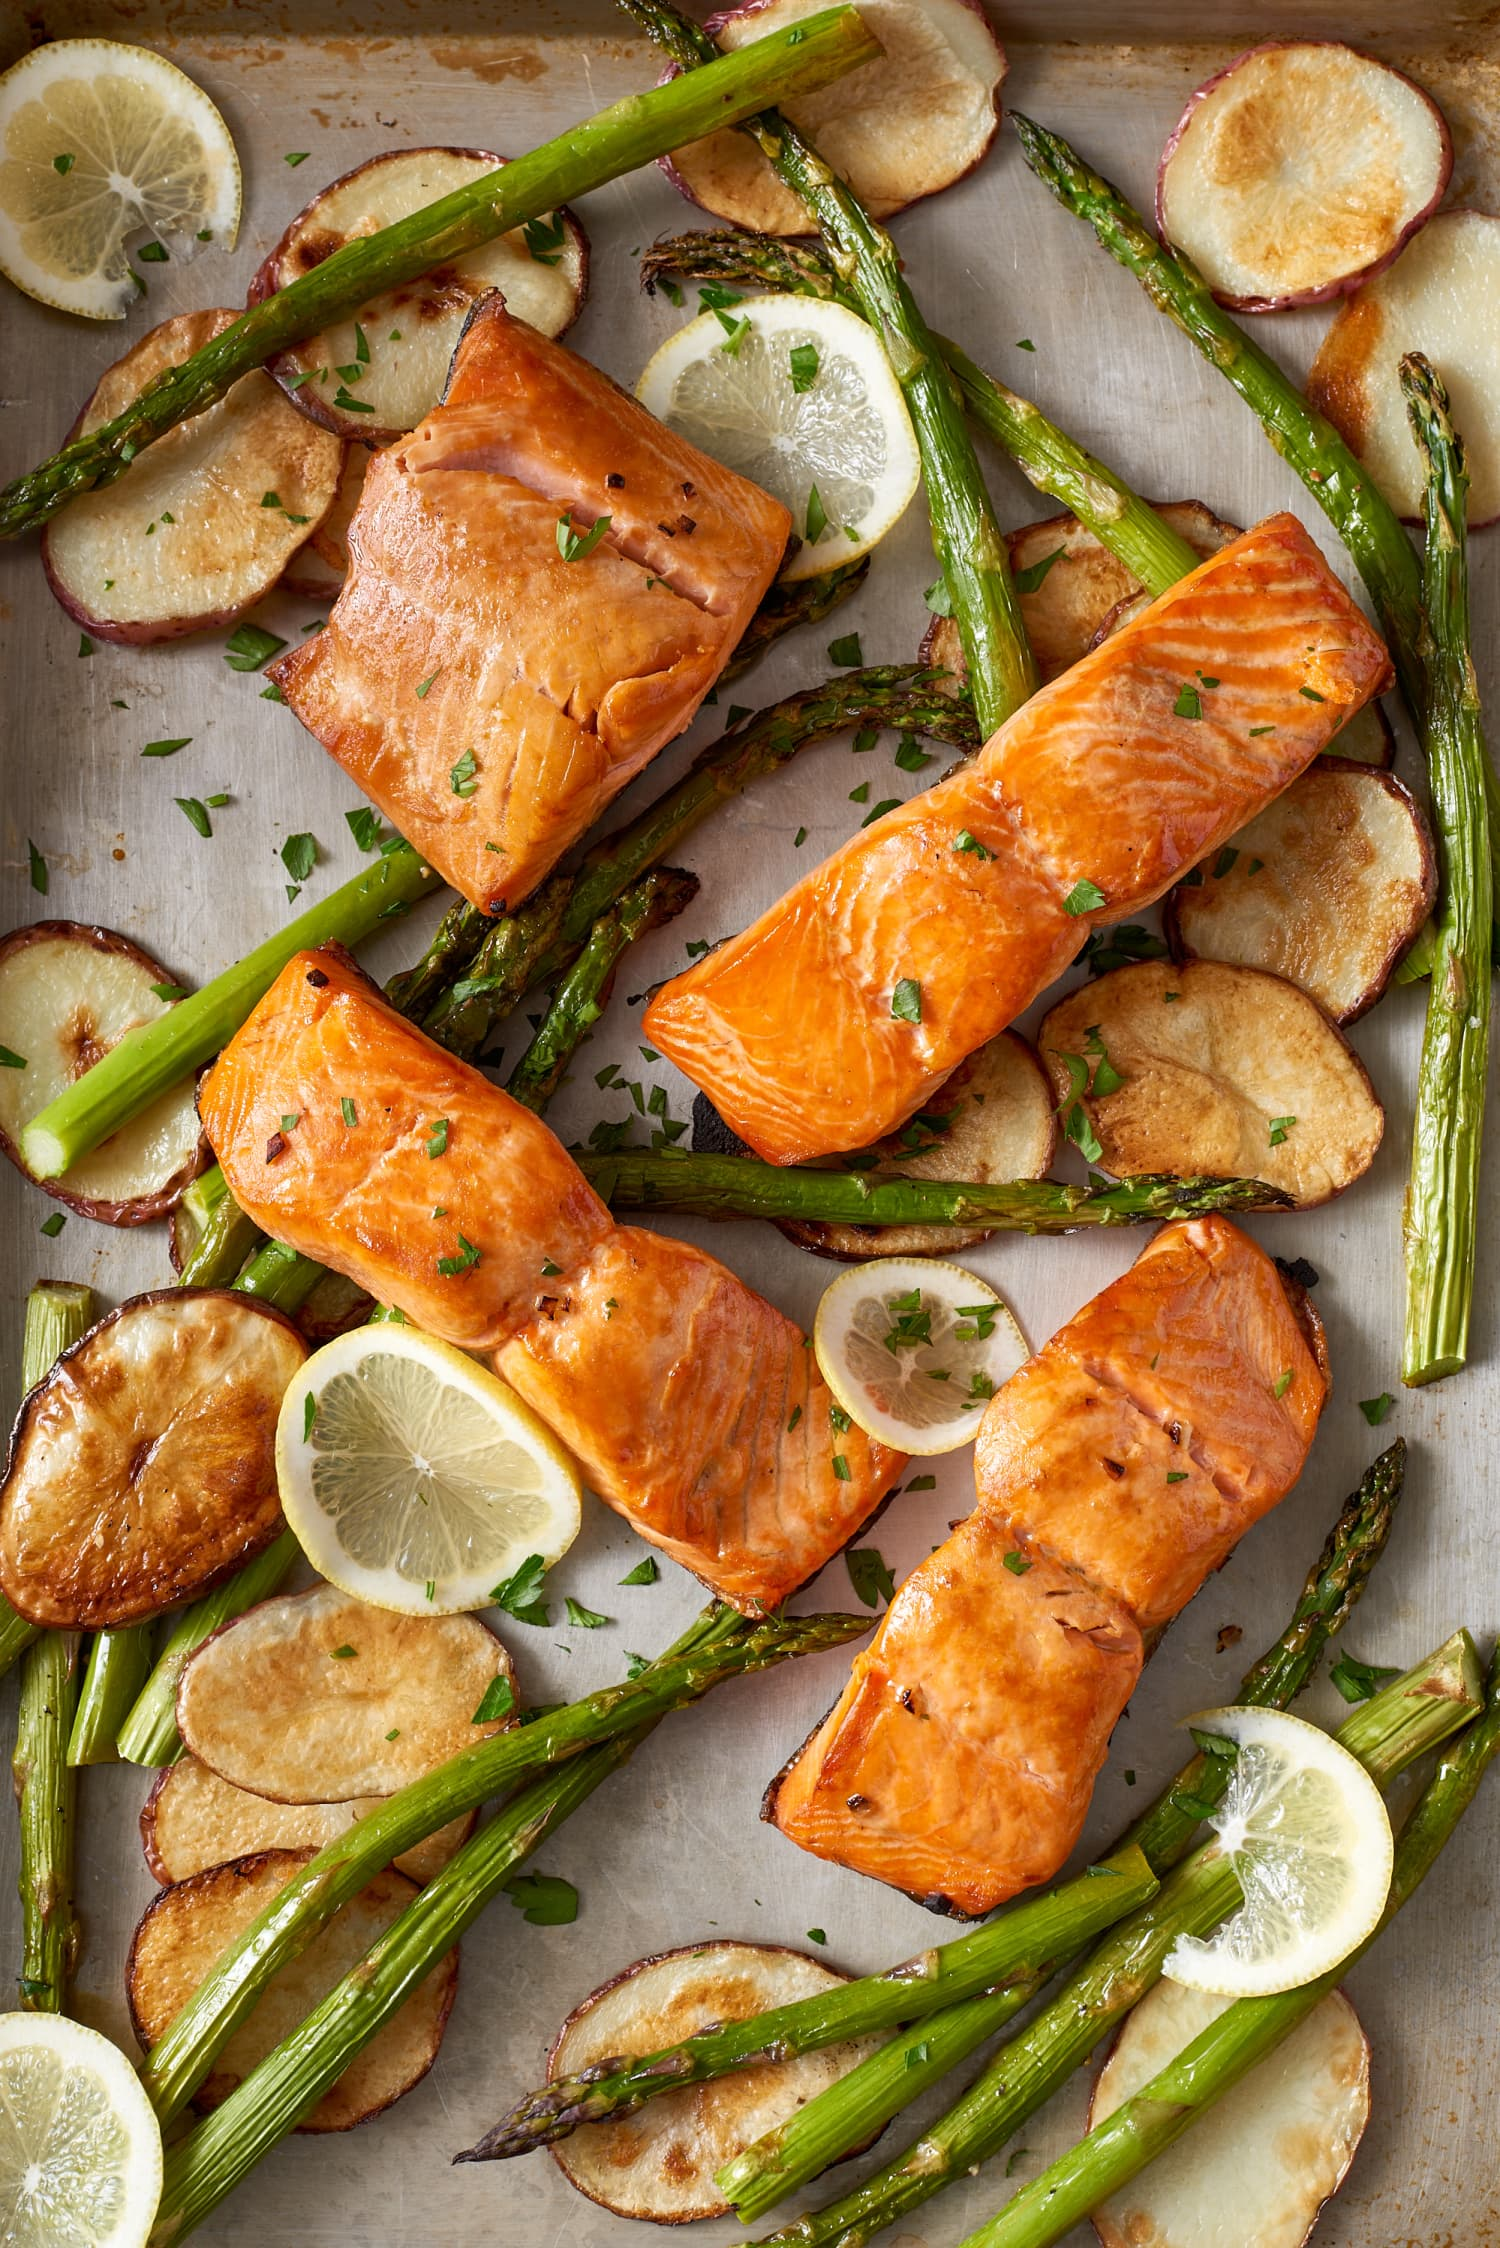 Sheet Pan Crispy Salmon and Potatoes Comes Together in 20 Minutes